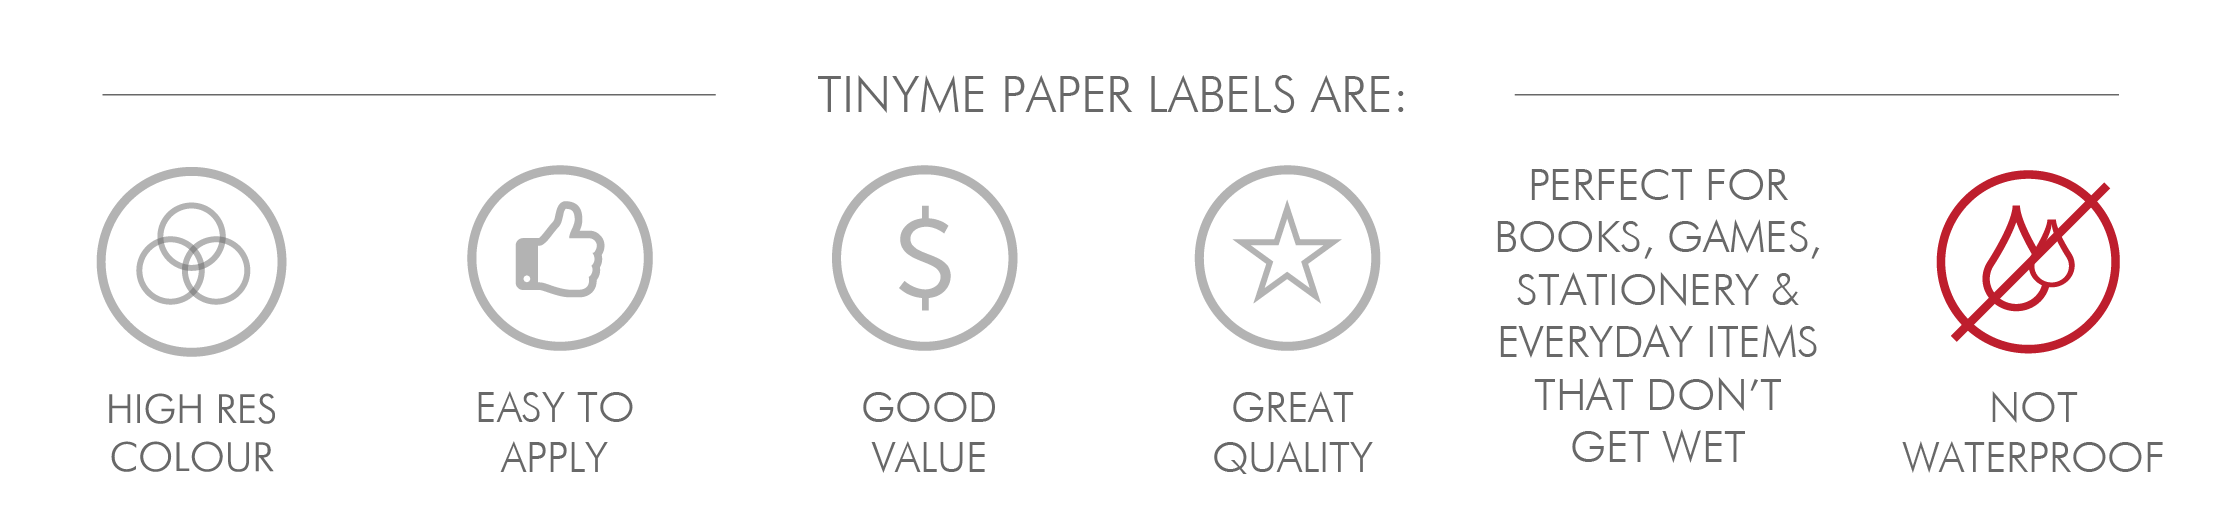 Paper Label Features